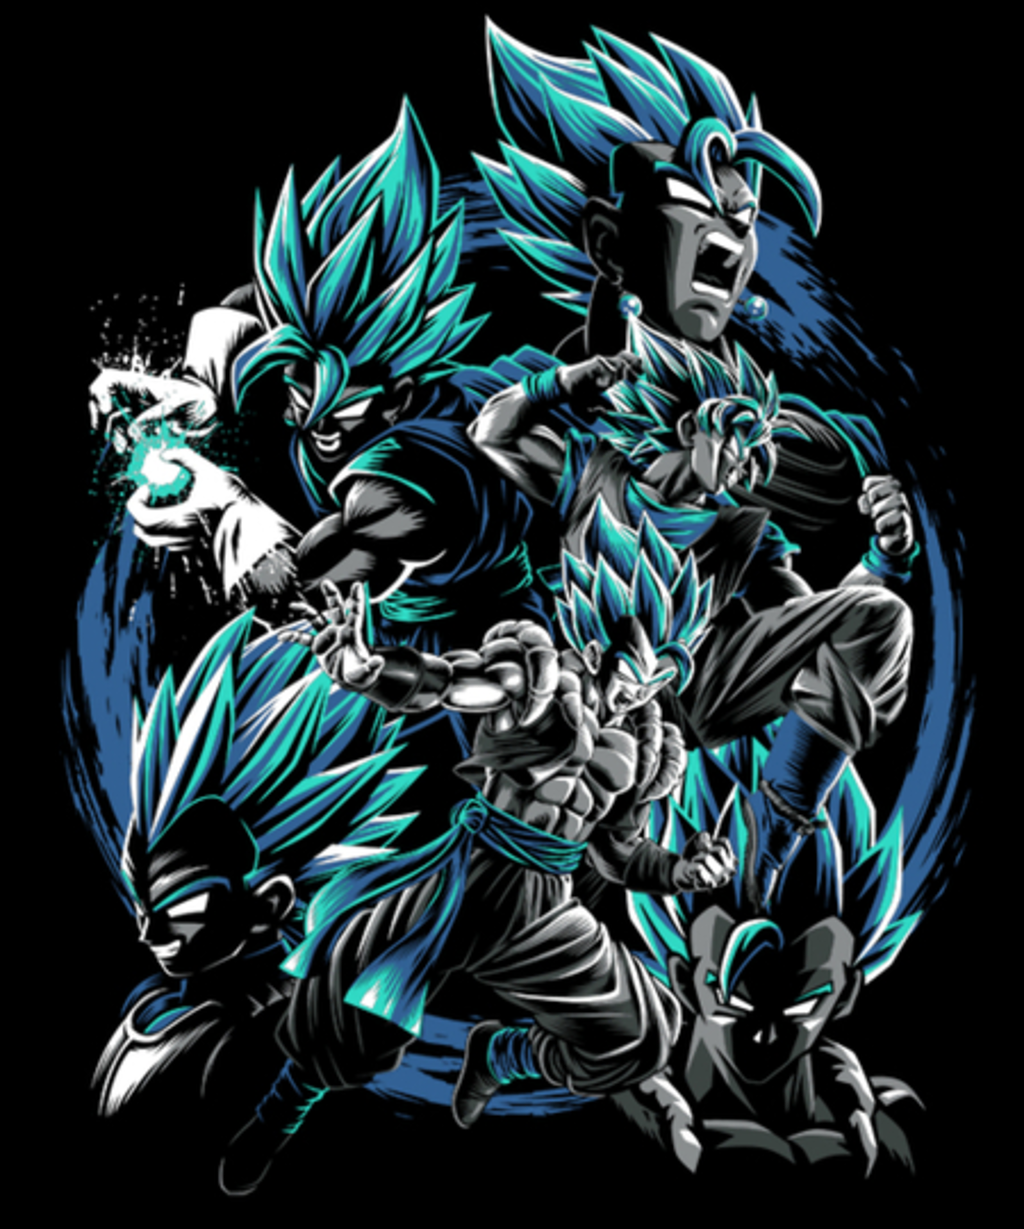 Qwertee: Fusions